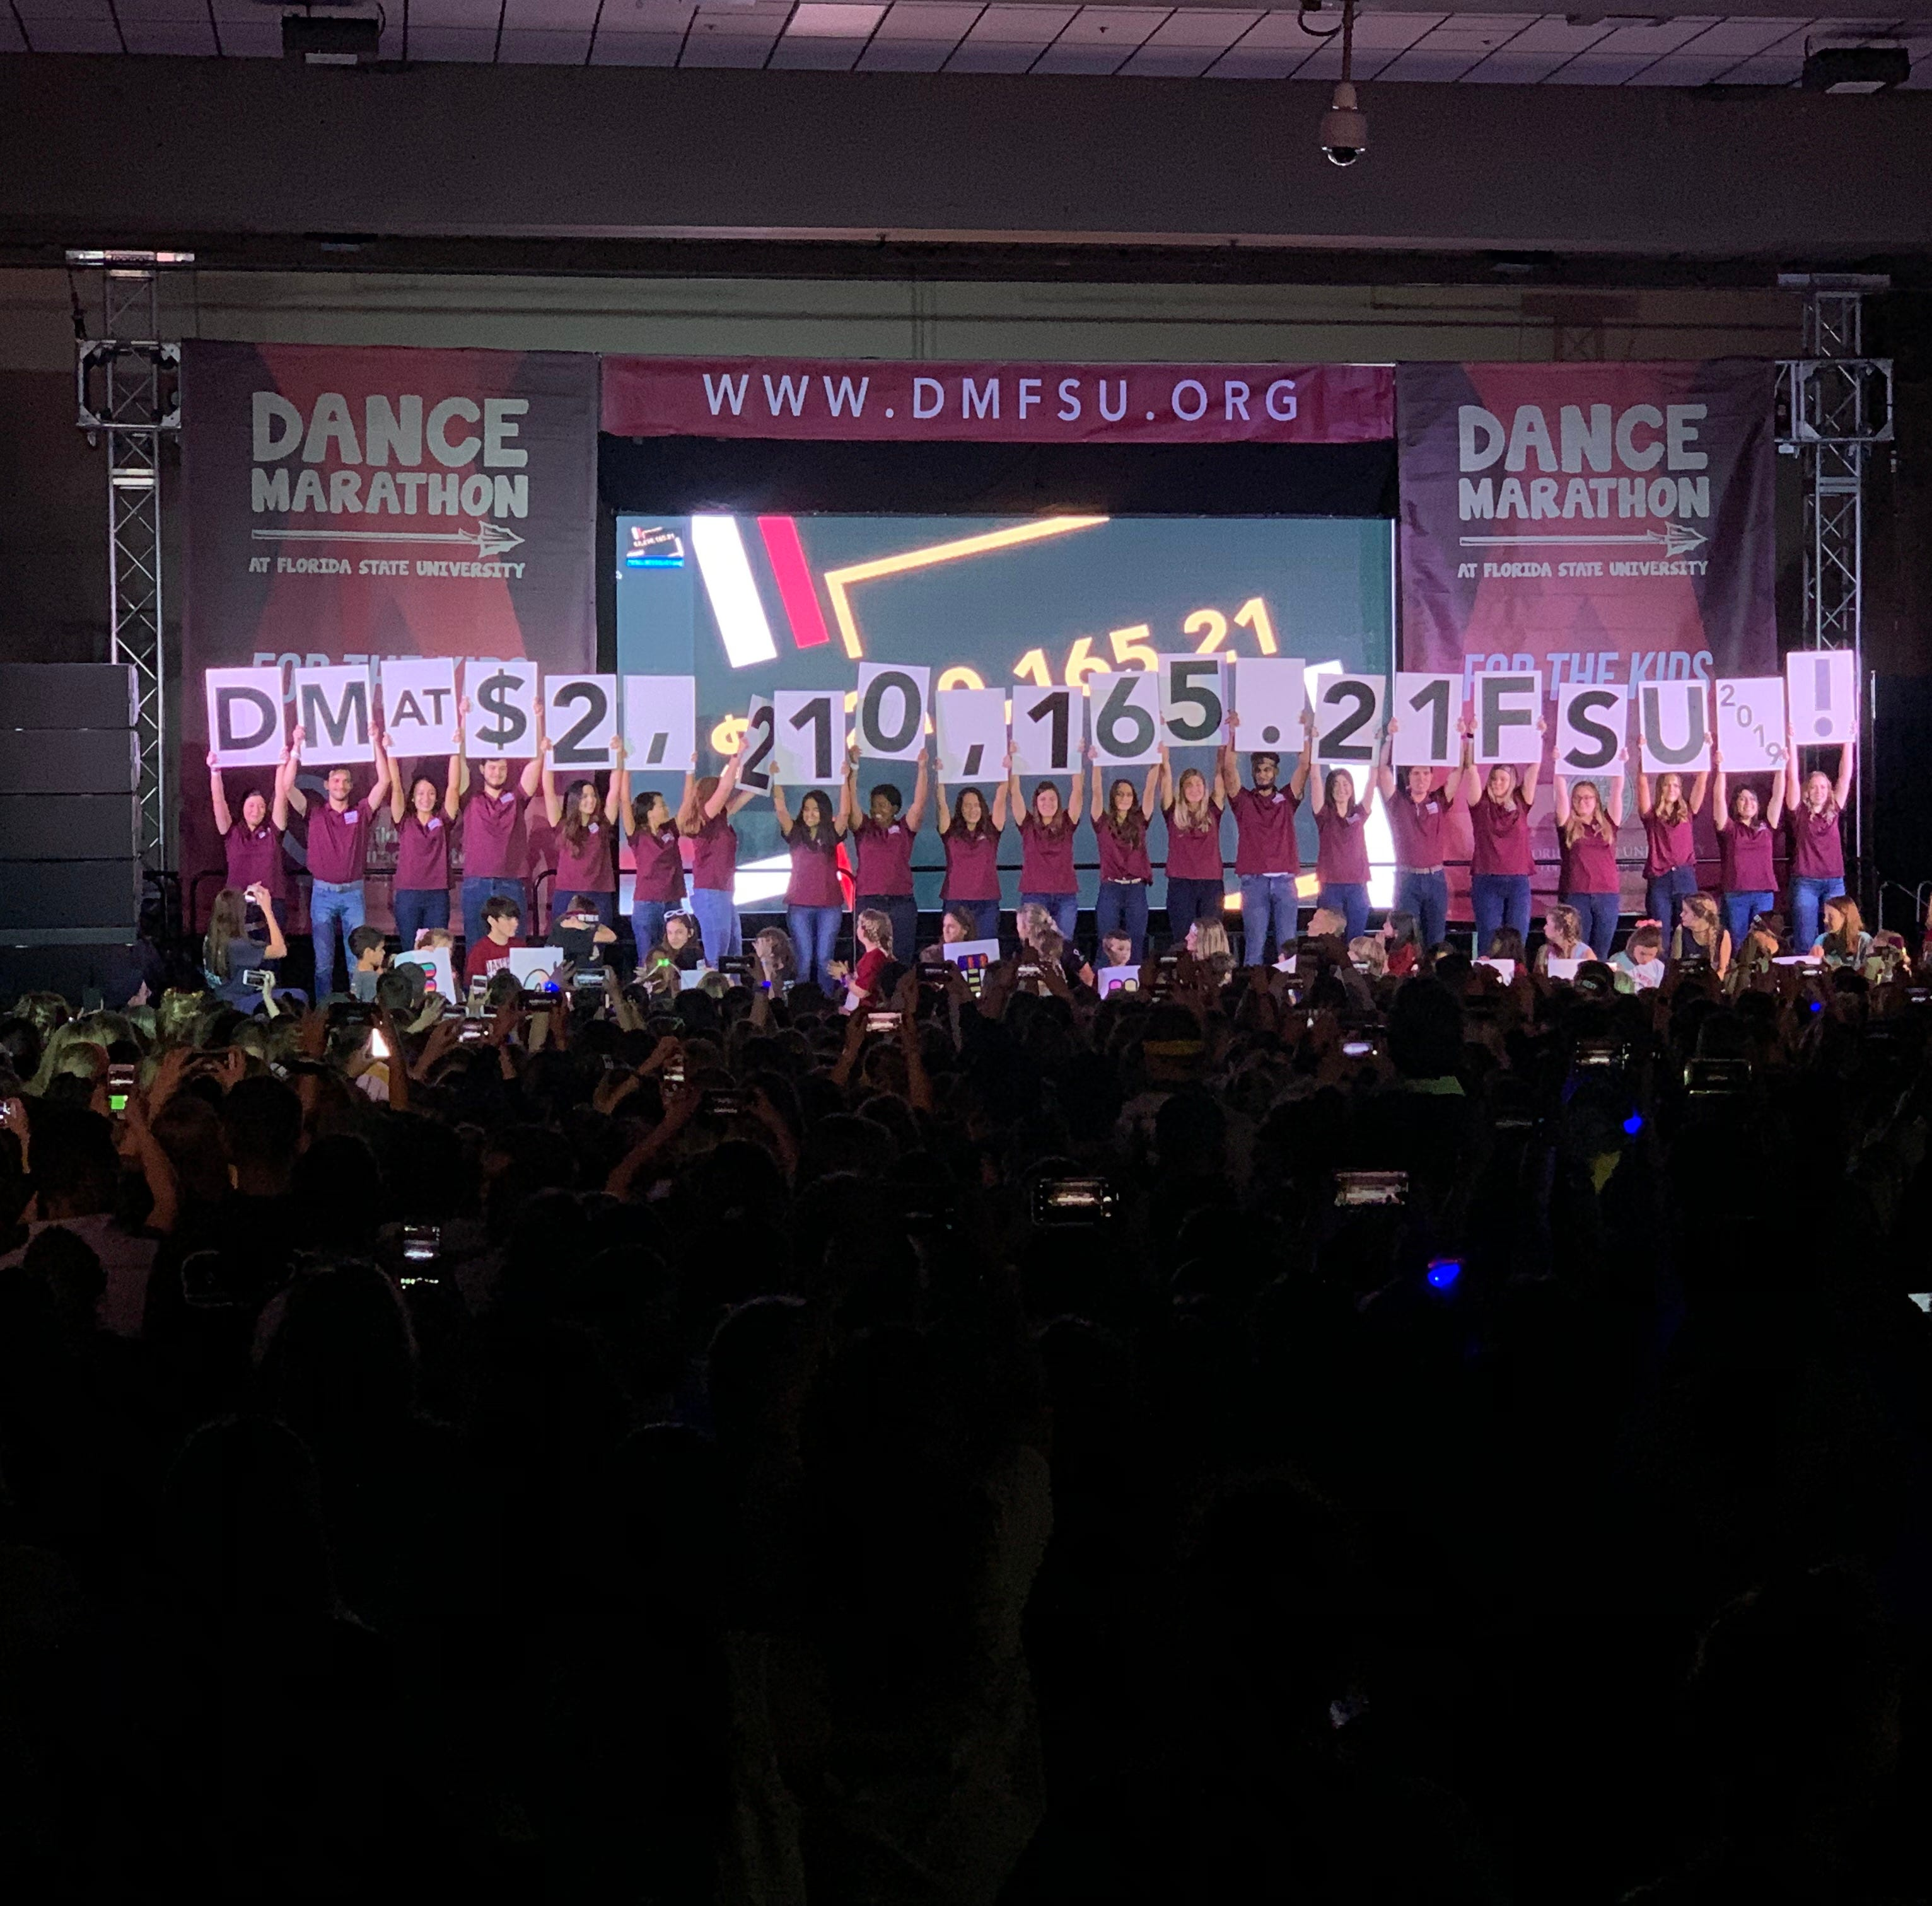 Dance Marathon at FSU raises $2,210,165.21 for Children's Miracle Network